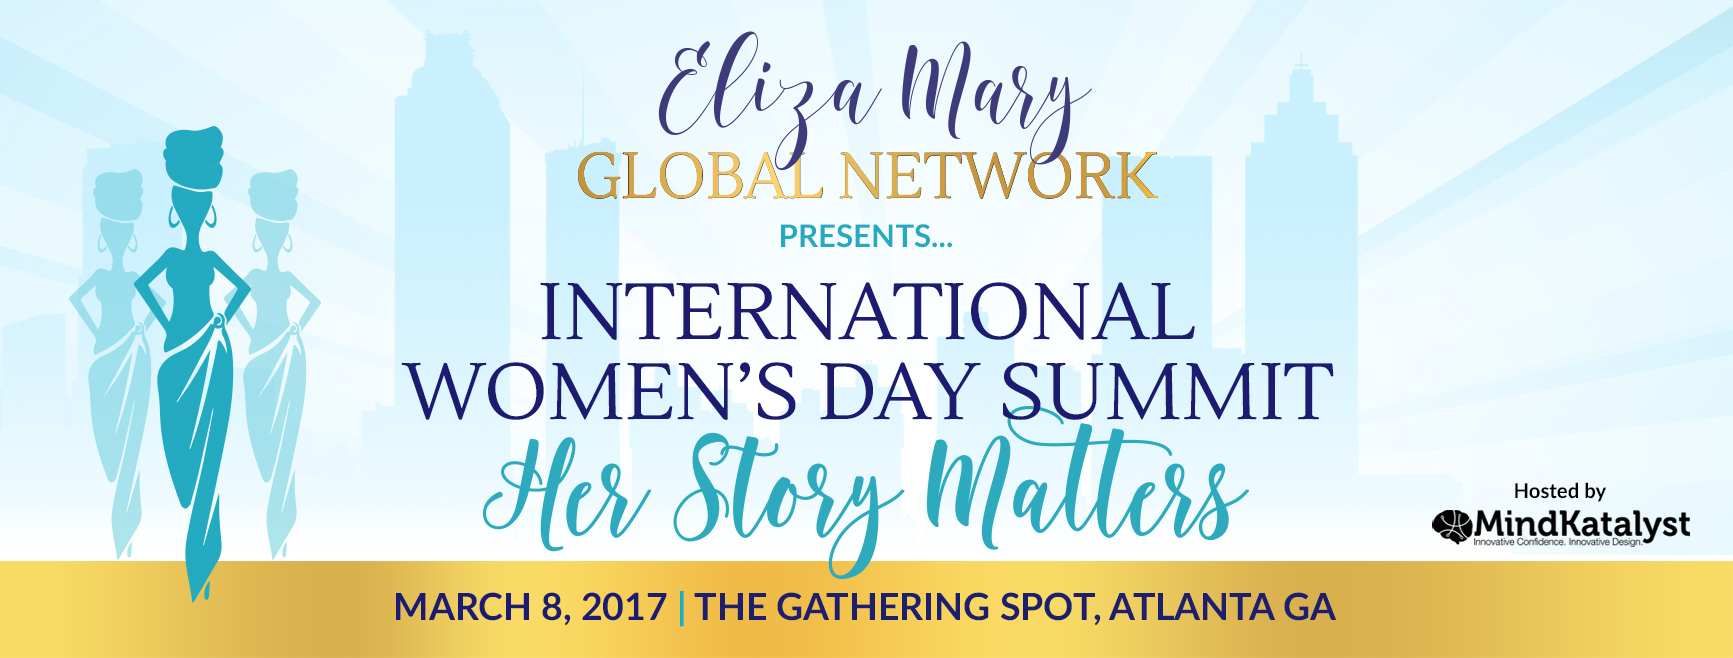 EMGN International Women's Day Summit